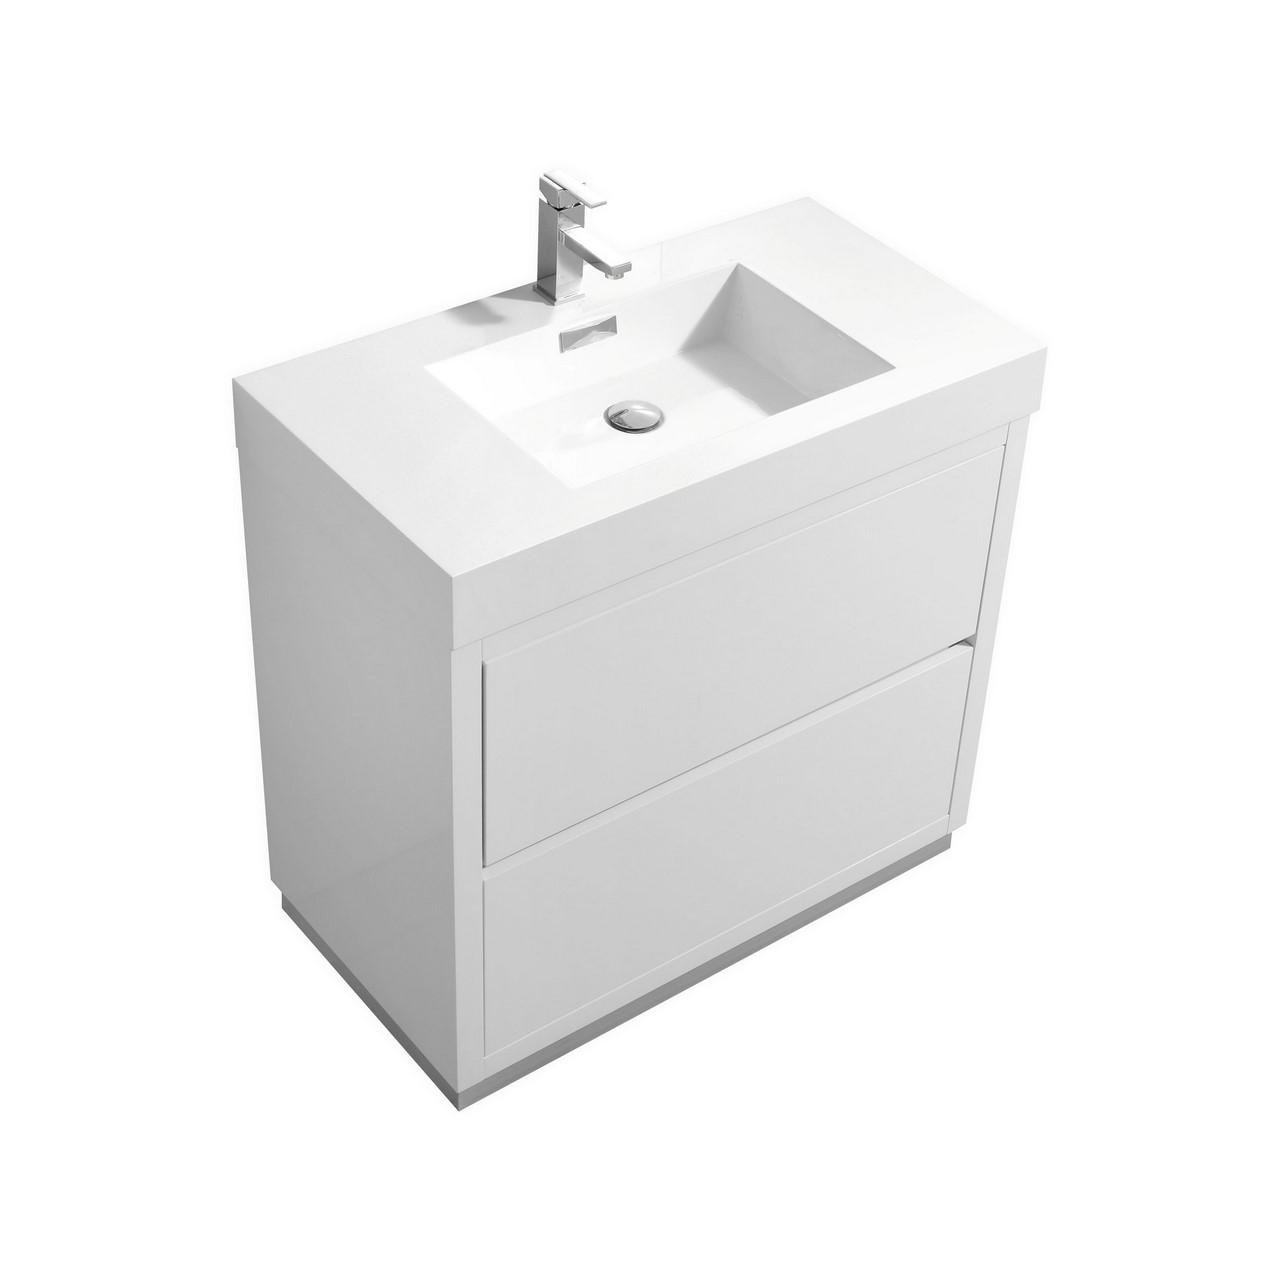 "Modern Lux 36"" High Gloss White Free Standing Modern Bathroom Vanity"